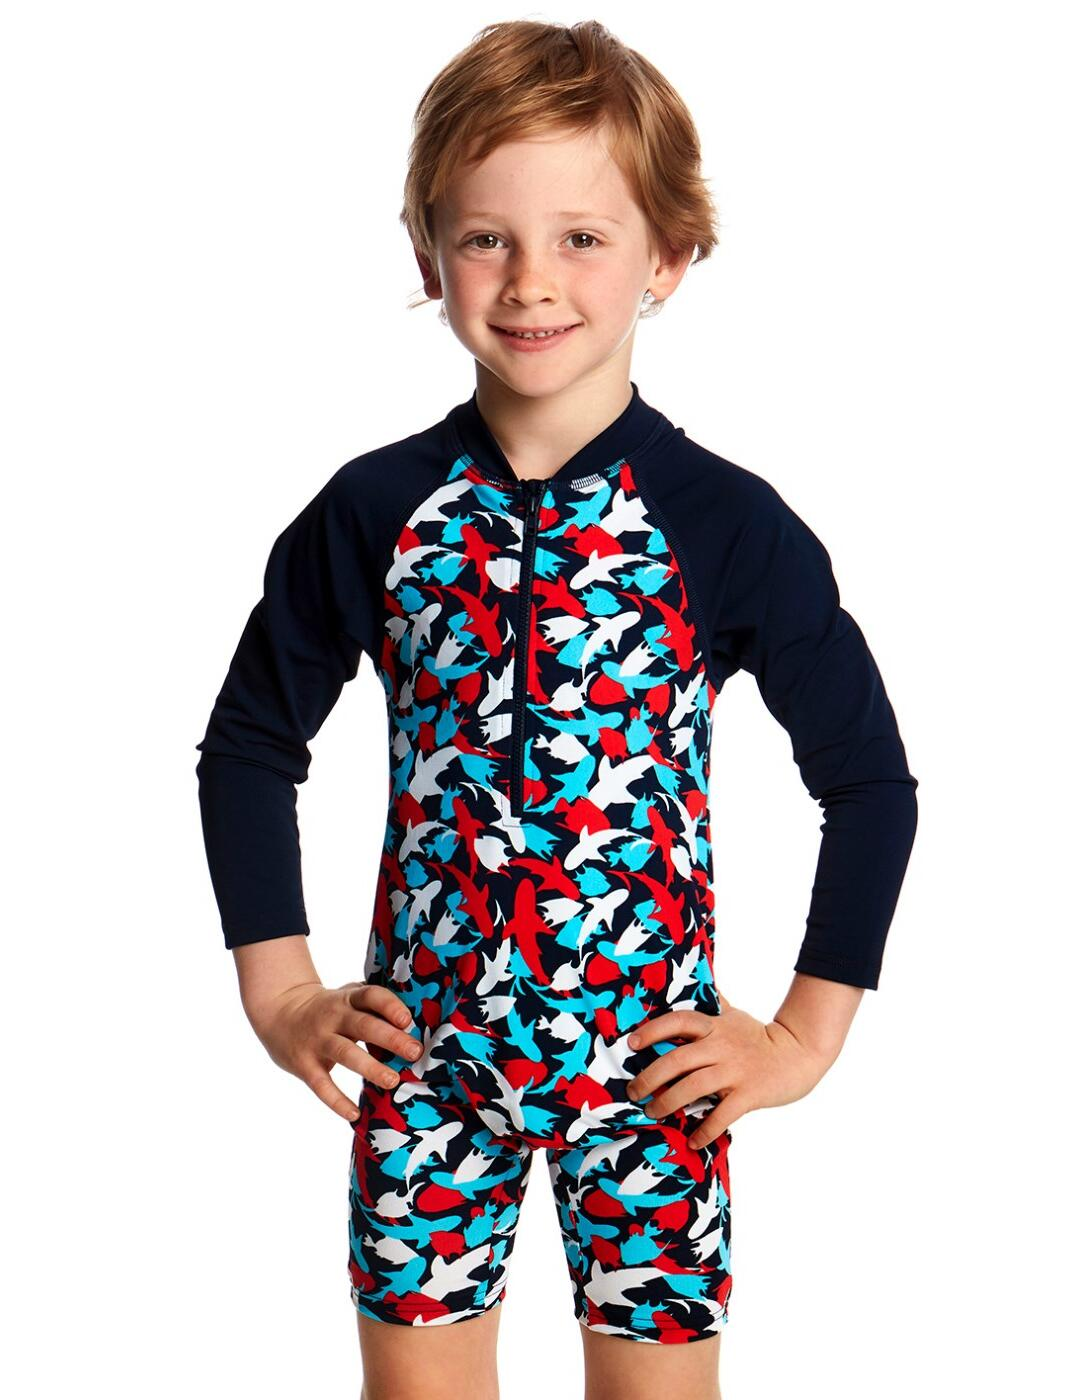 FTS00T Funky Trunks Toddler Boys Go Swim Jump Suit - FTS00T01795 Feeding Frenzy